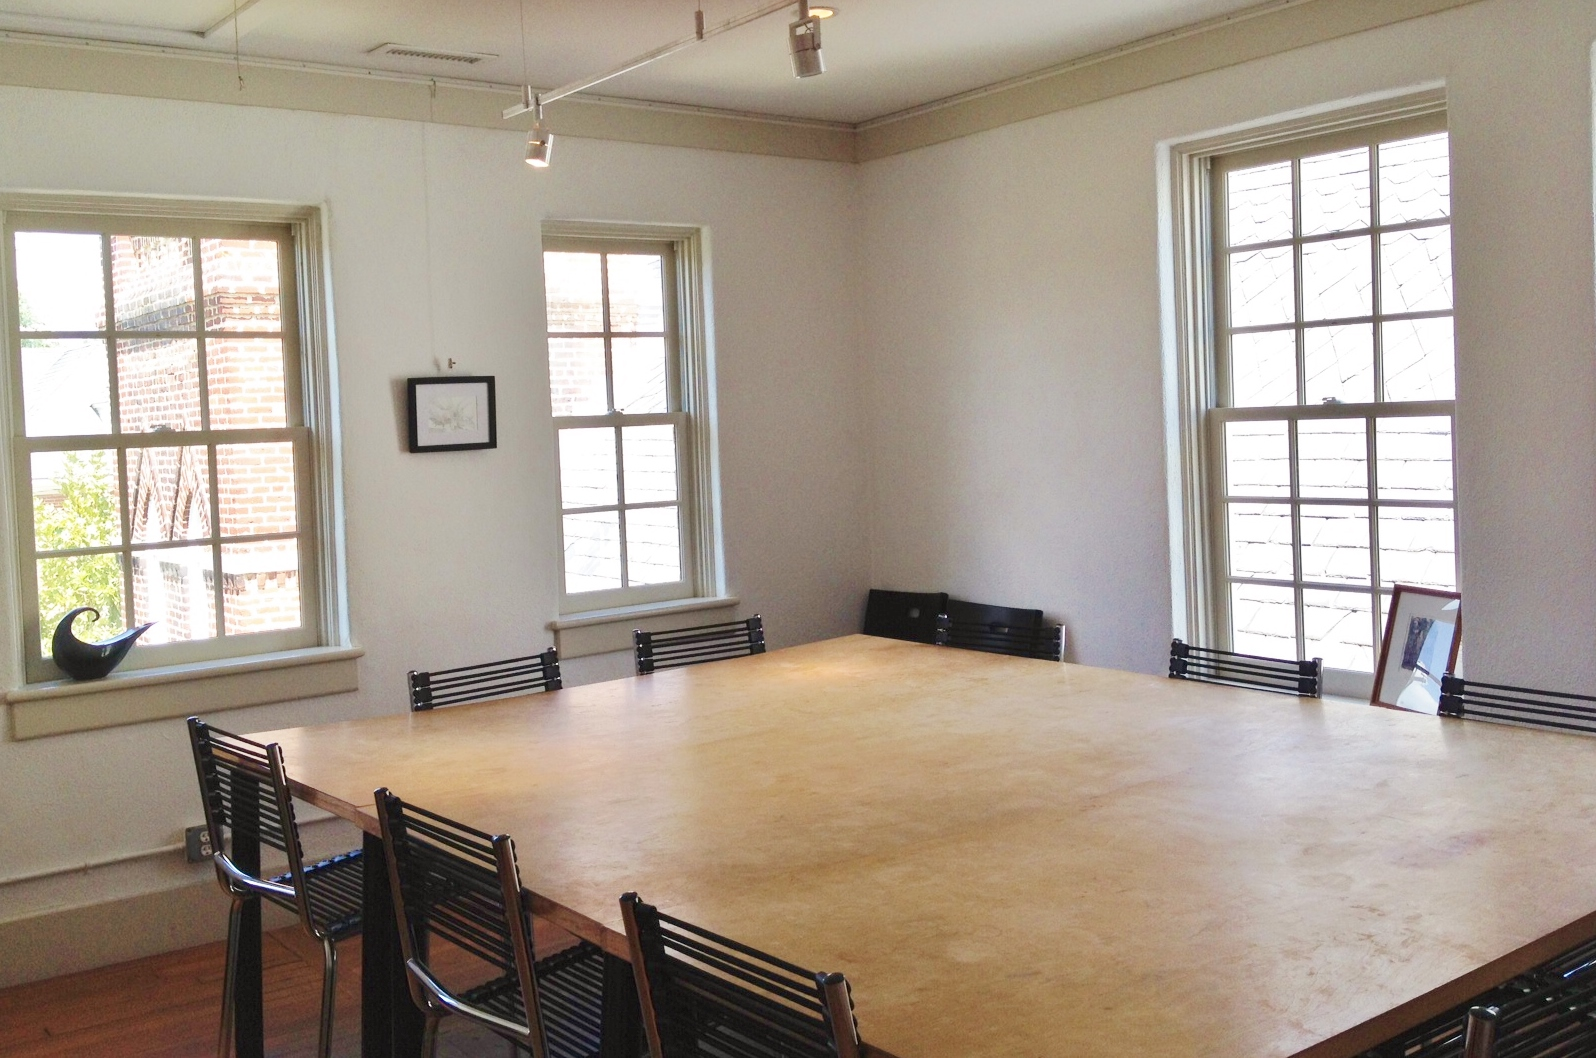 Conference Room Rental - The Haven